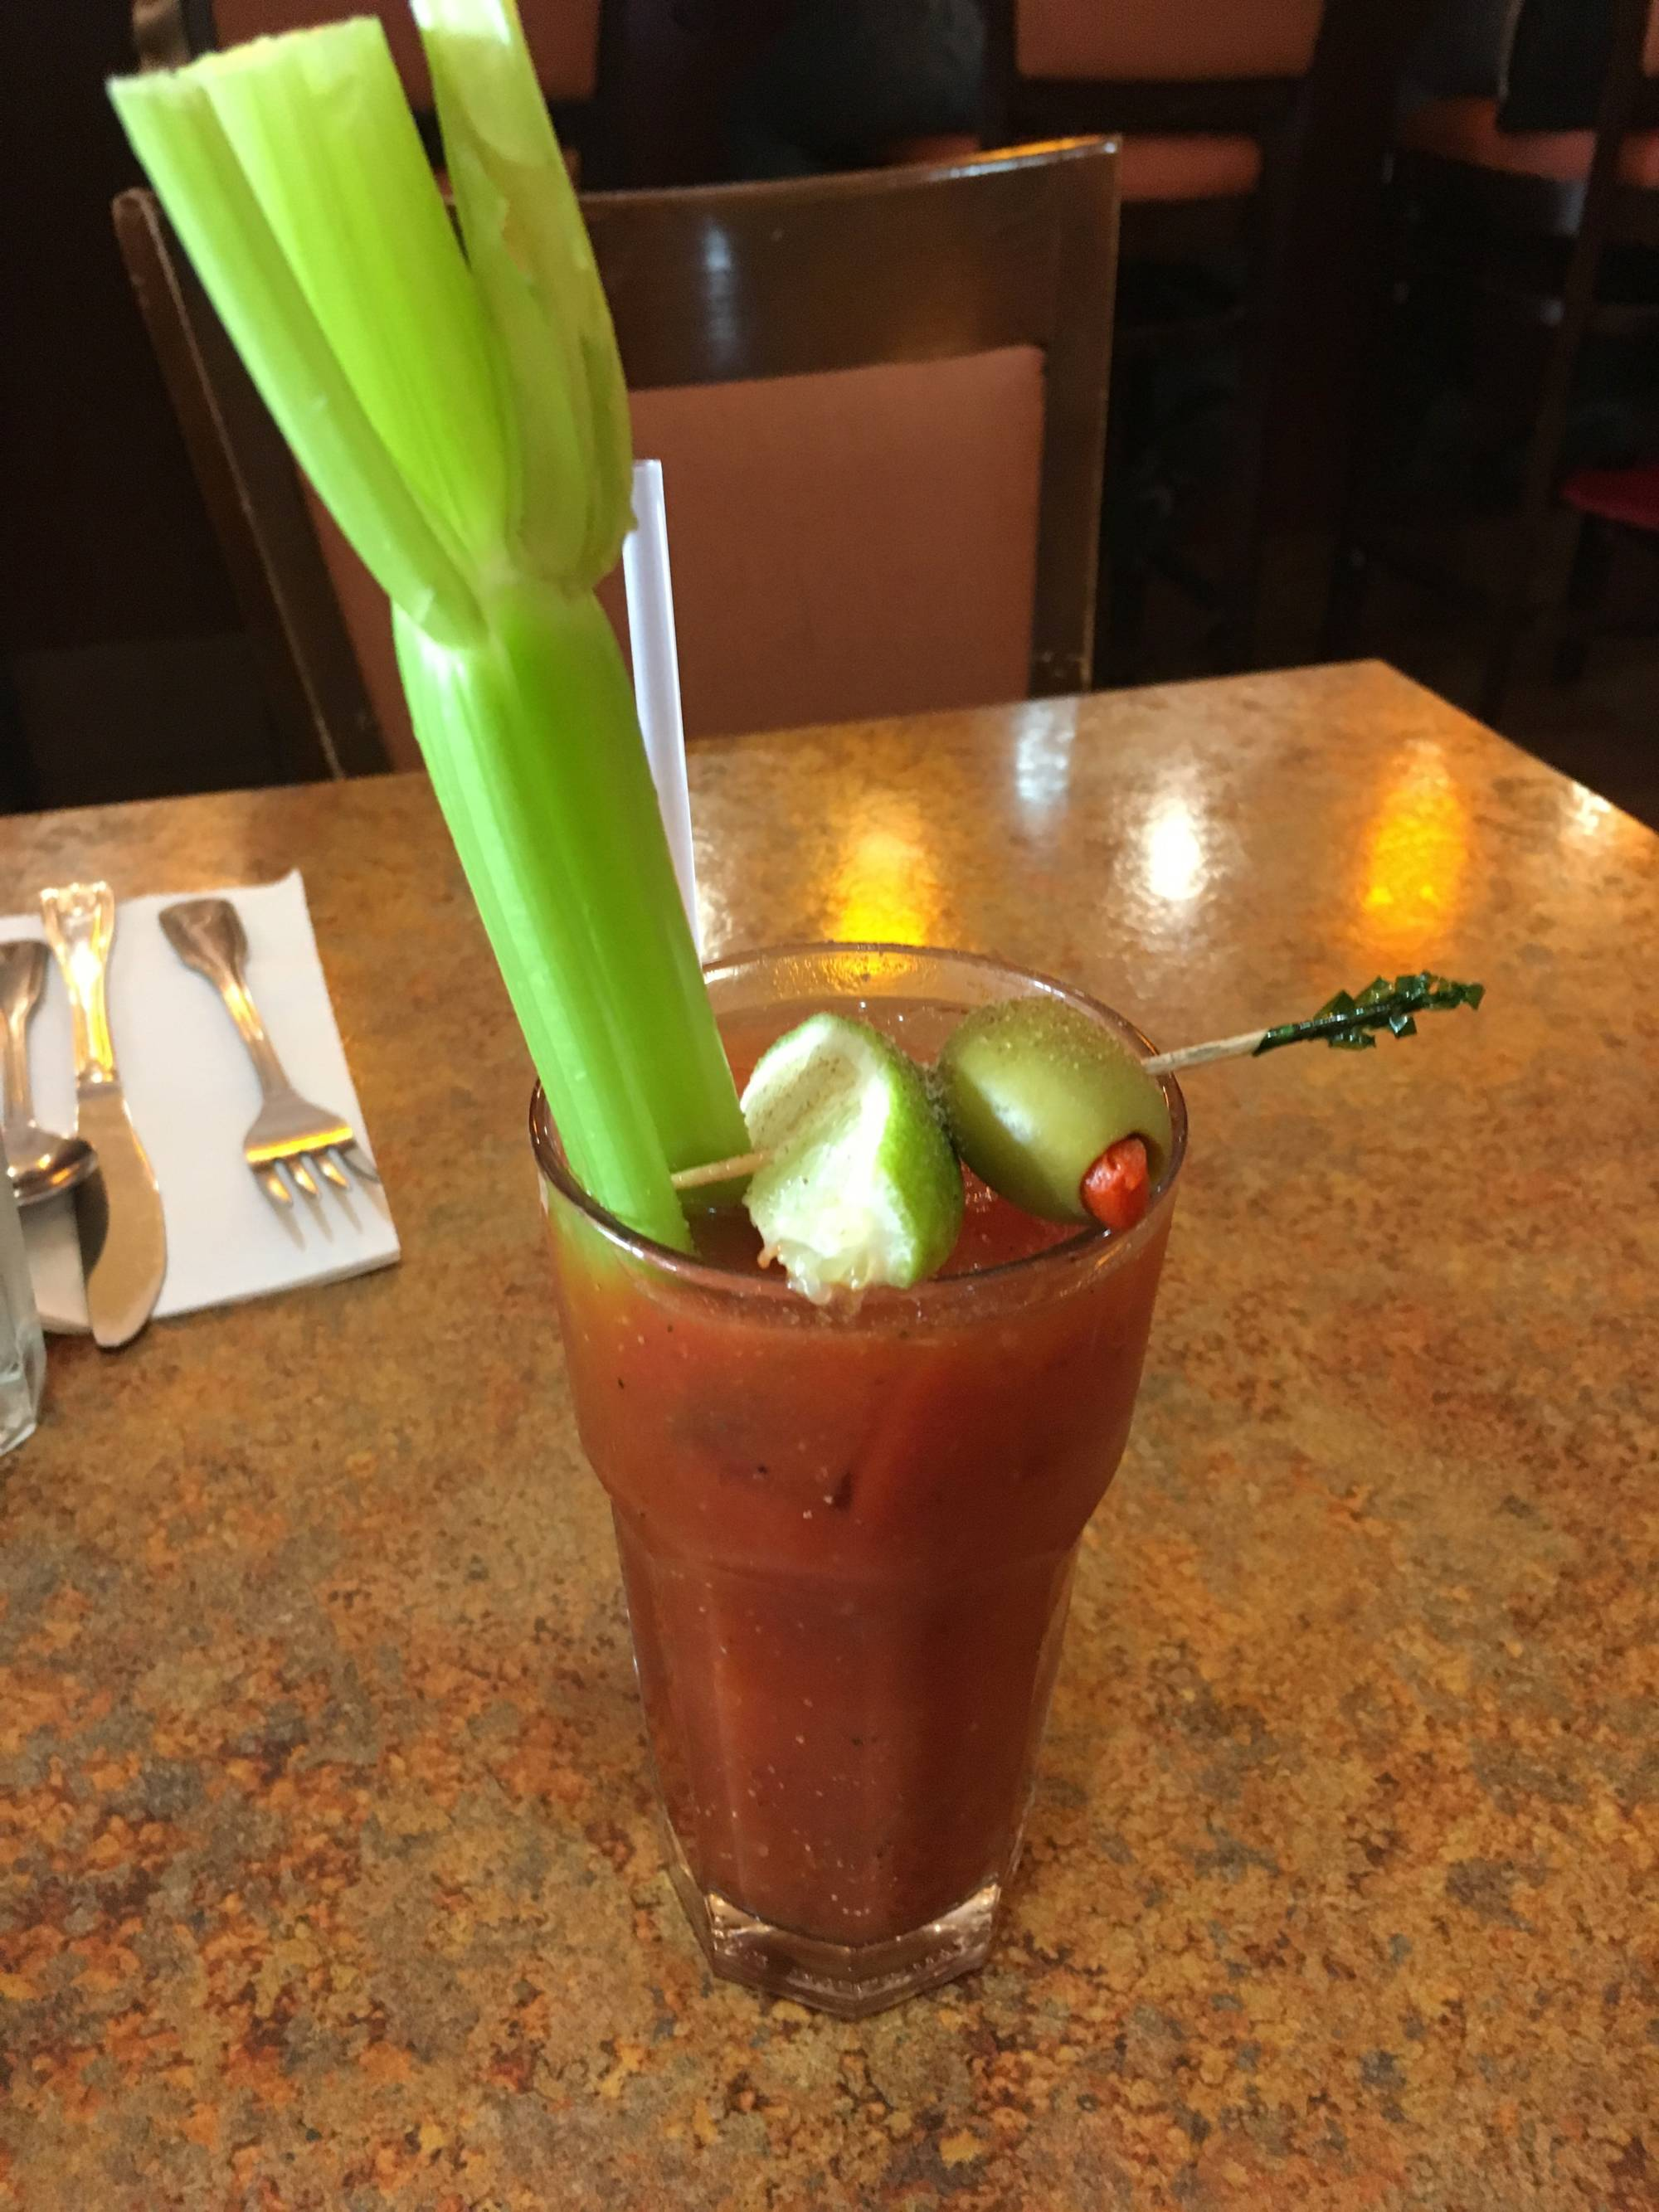 A Bloody Mary at Bill's Cafe.